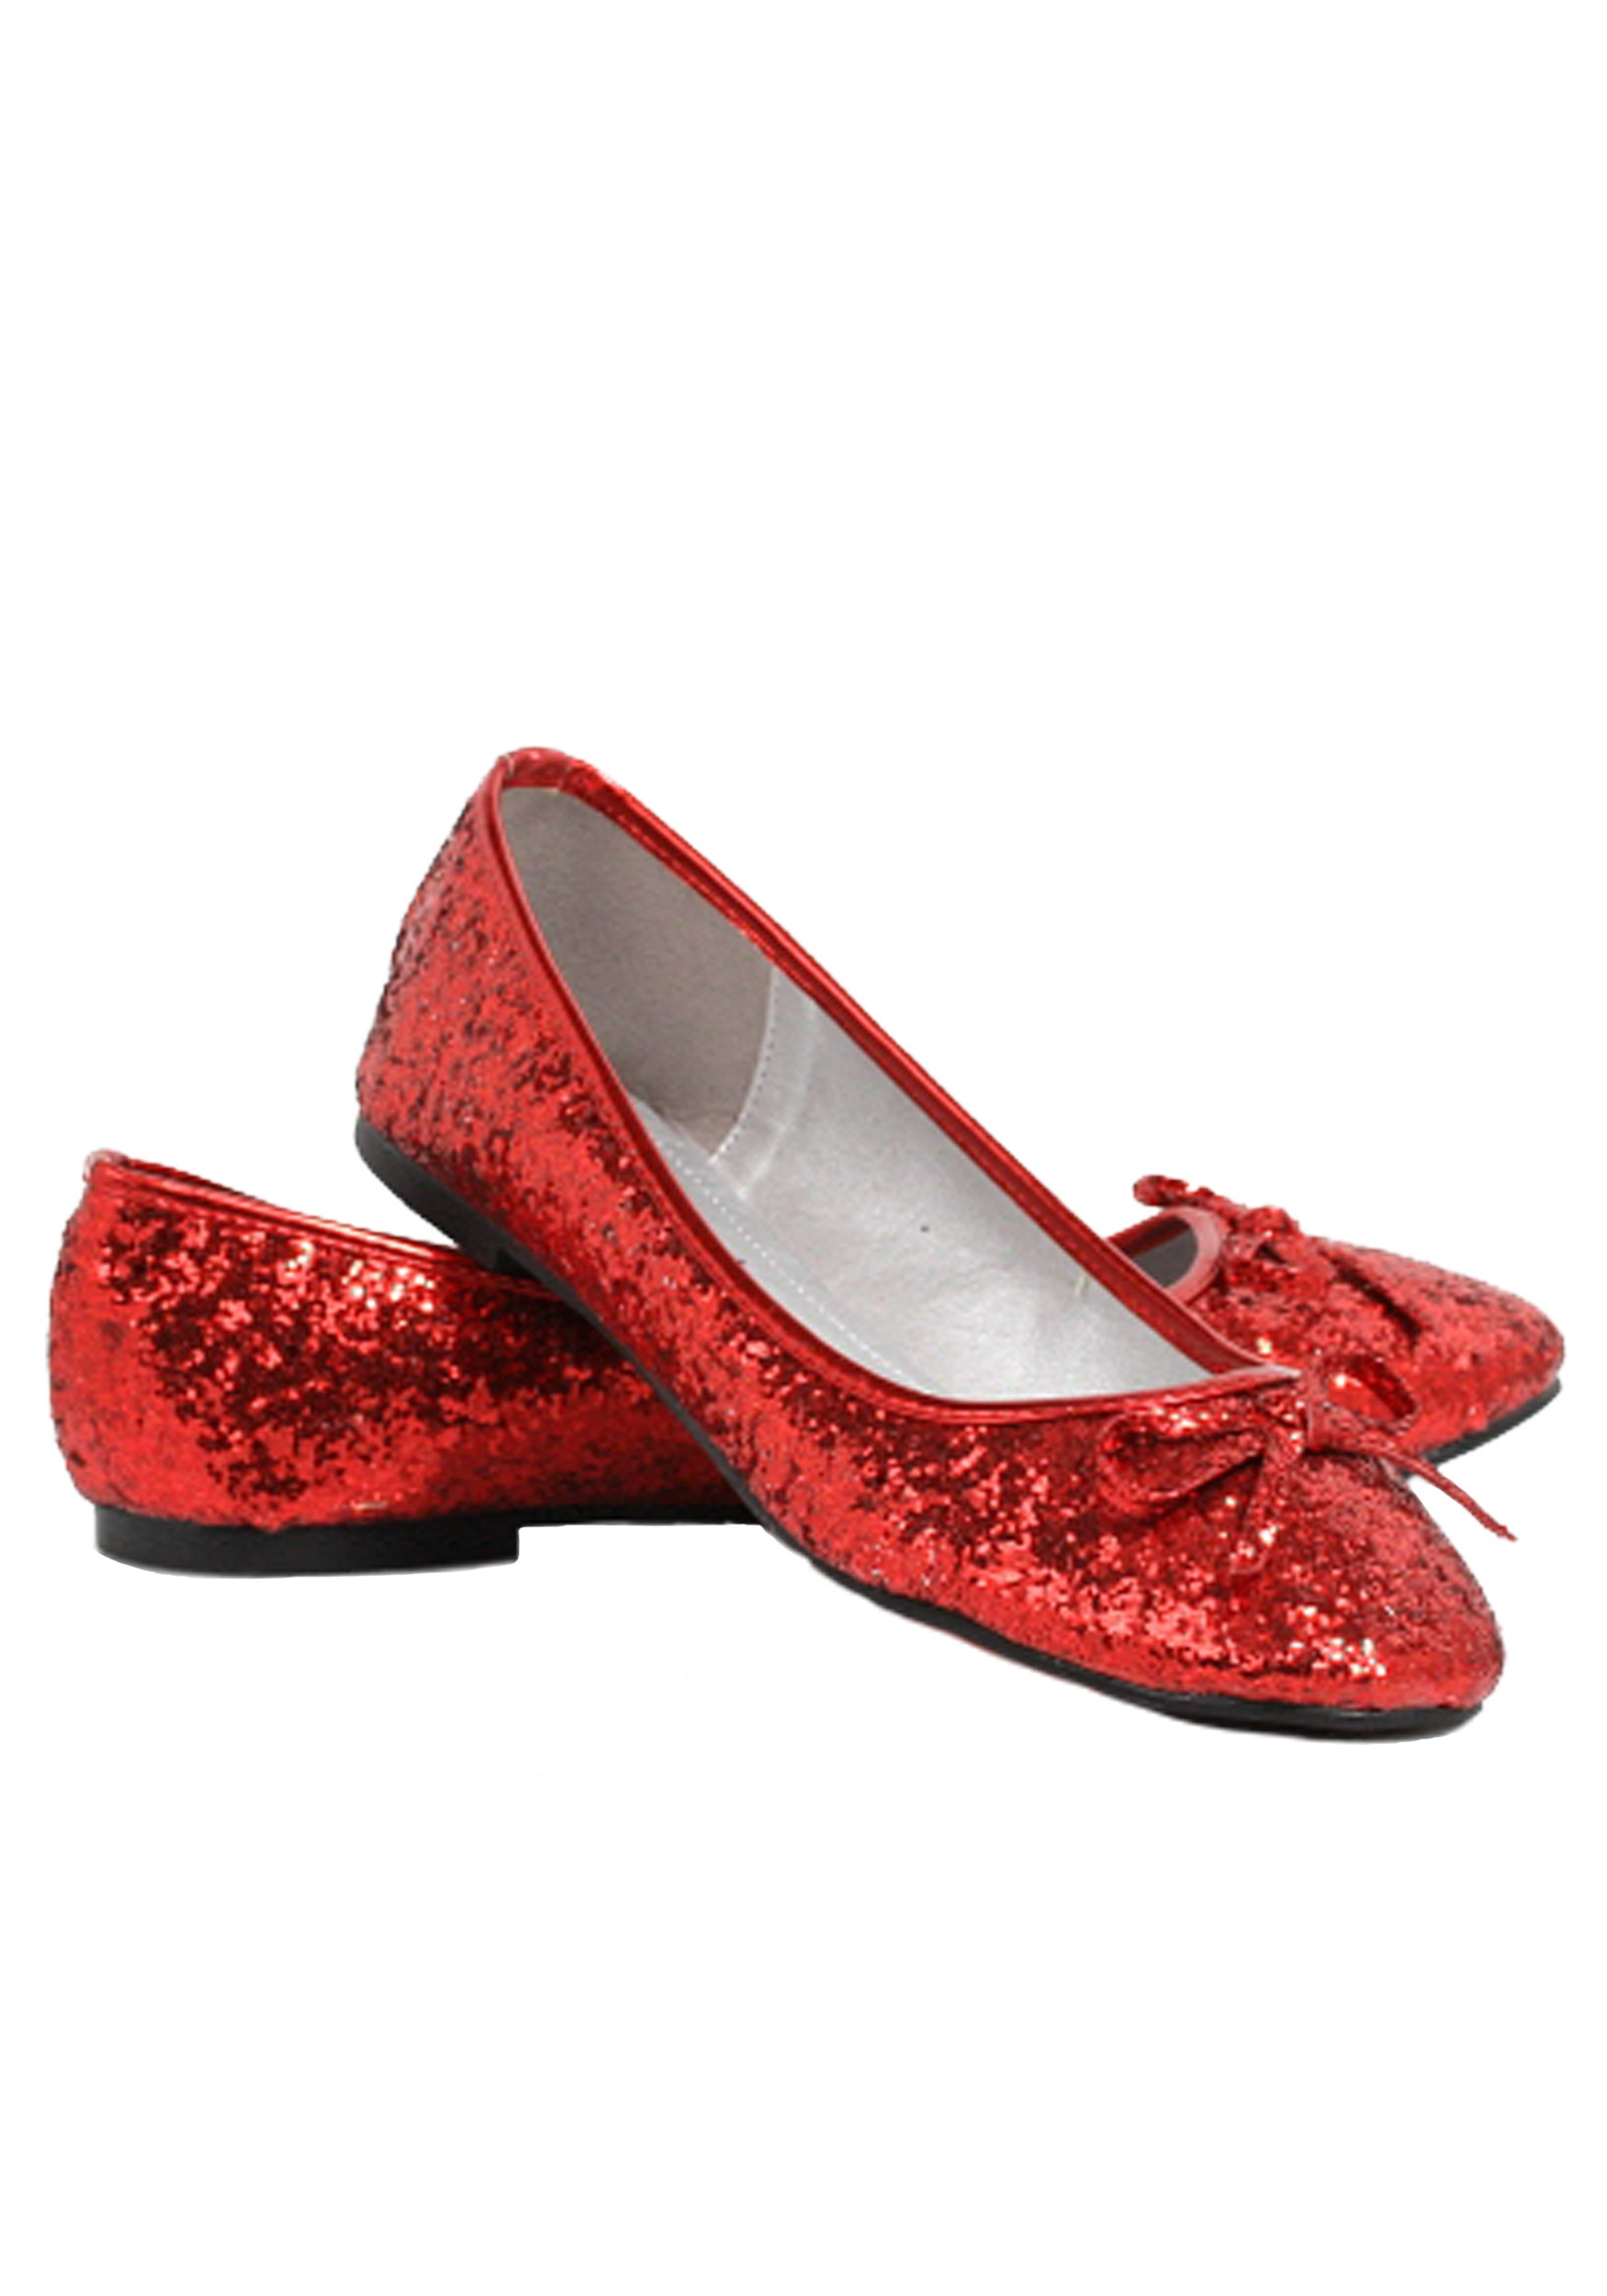 Women's Red Glitter Flats | Red Sparkly Shoes | Women's Shoes